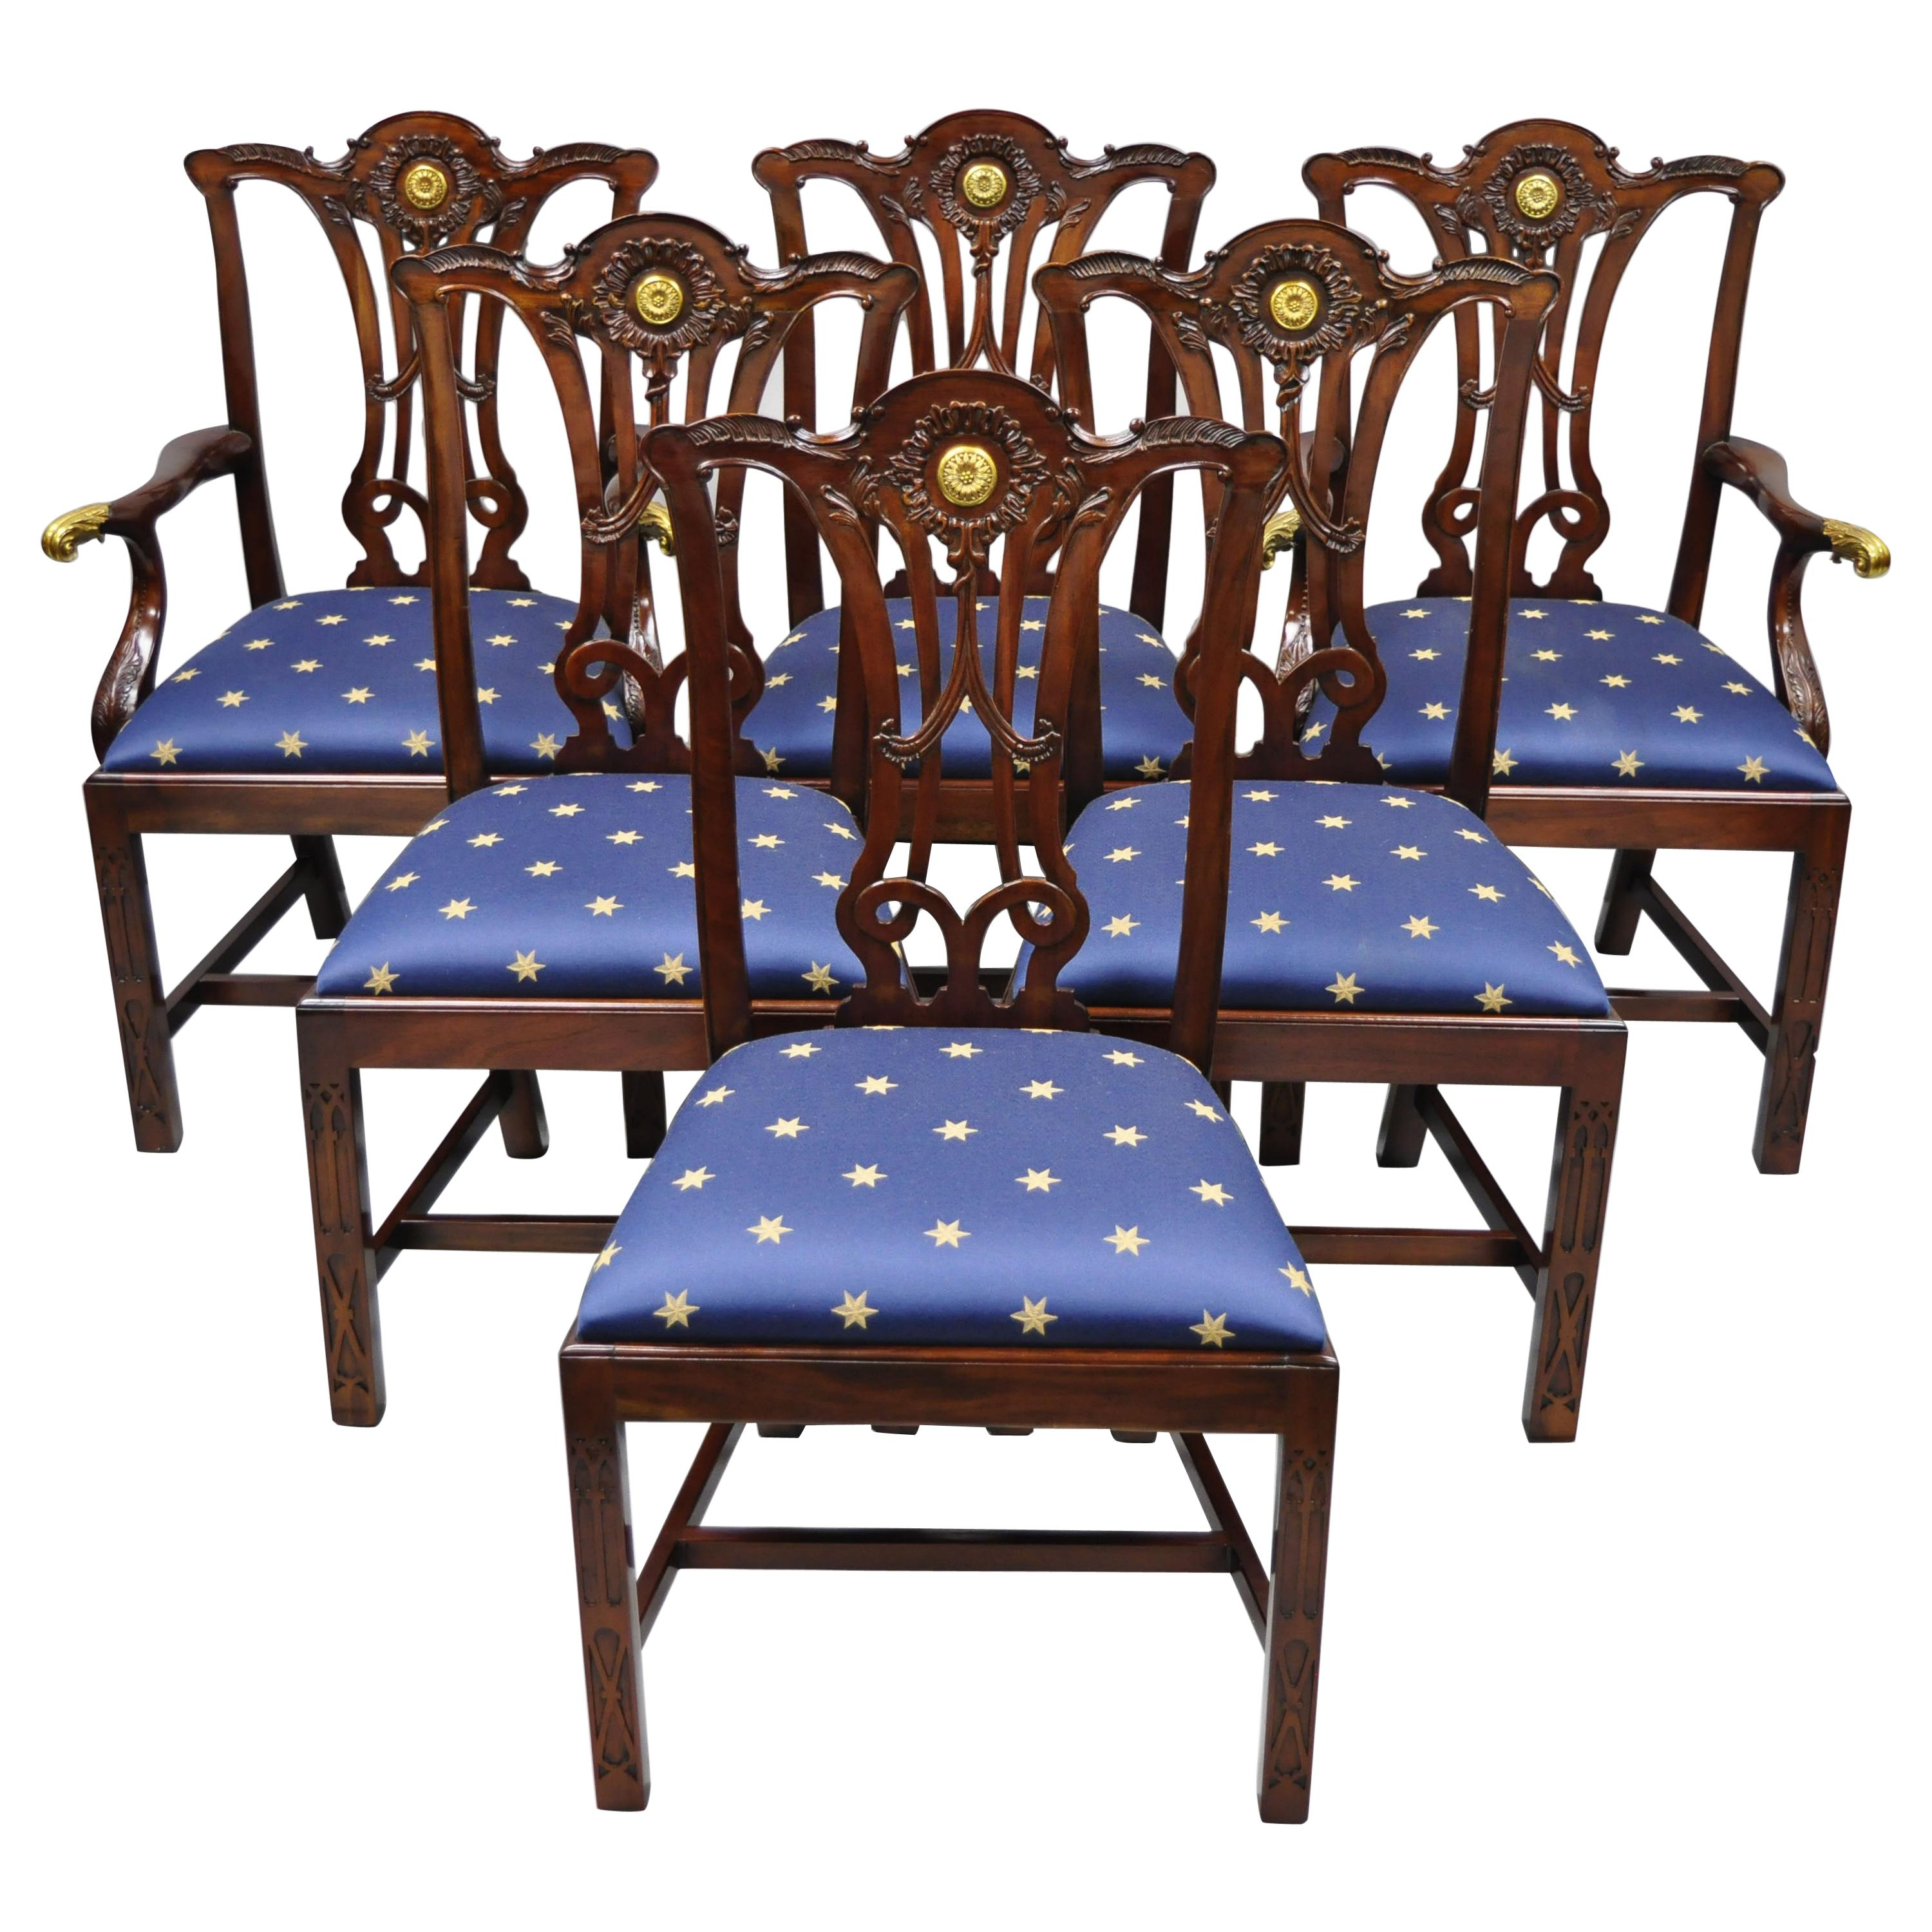 Set of 6 Maitland Smith Mahogany Chippendale Style Dining Chairs w/ Brass Ormolu